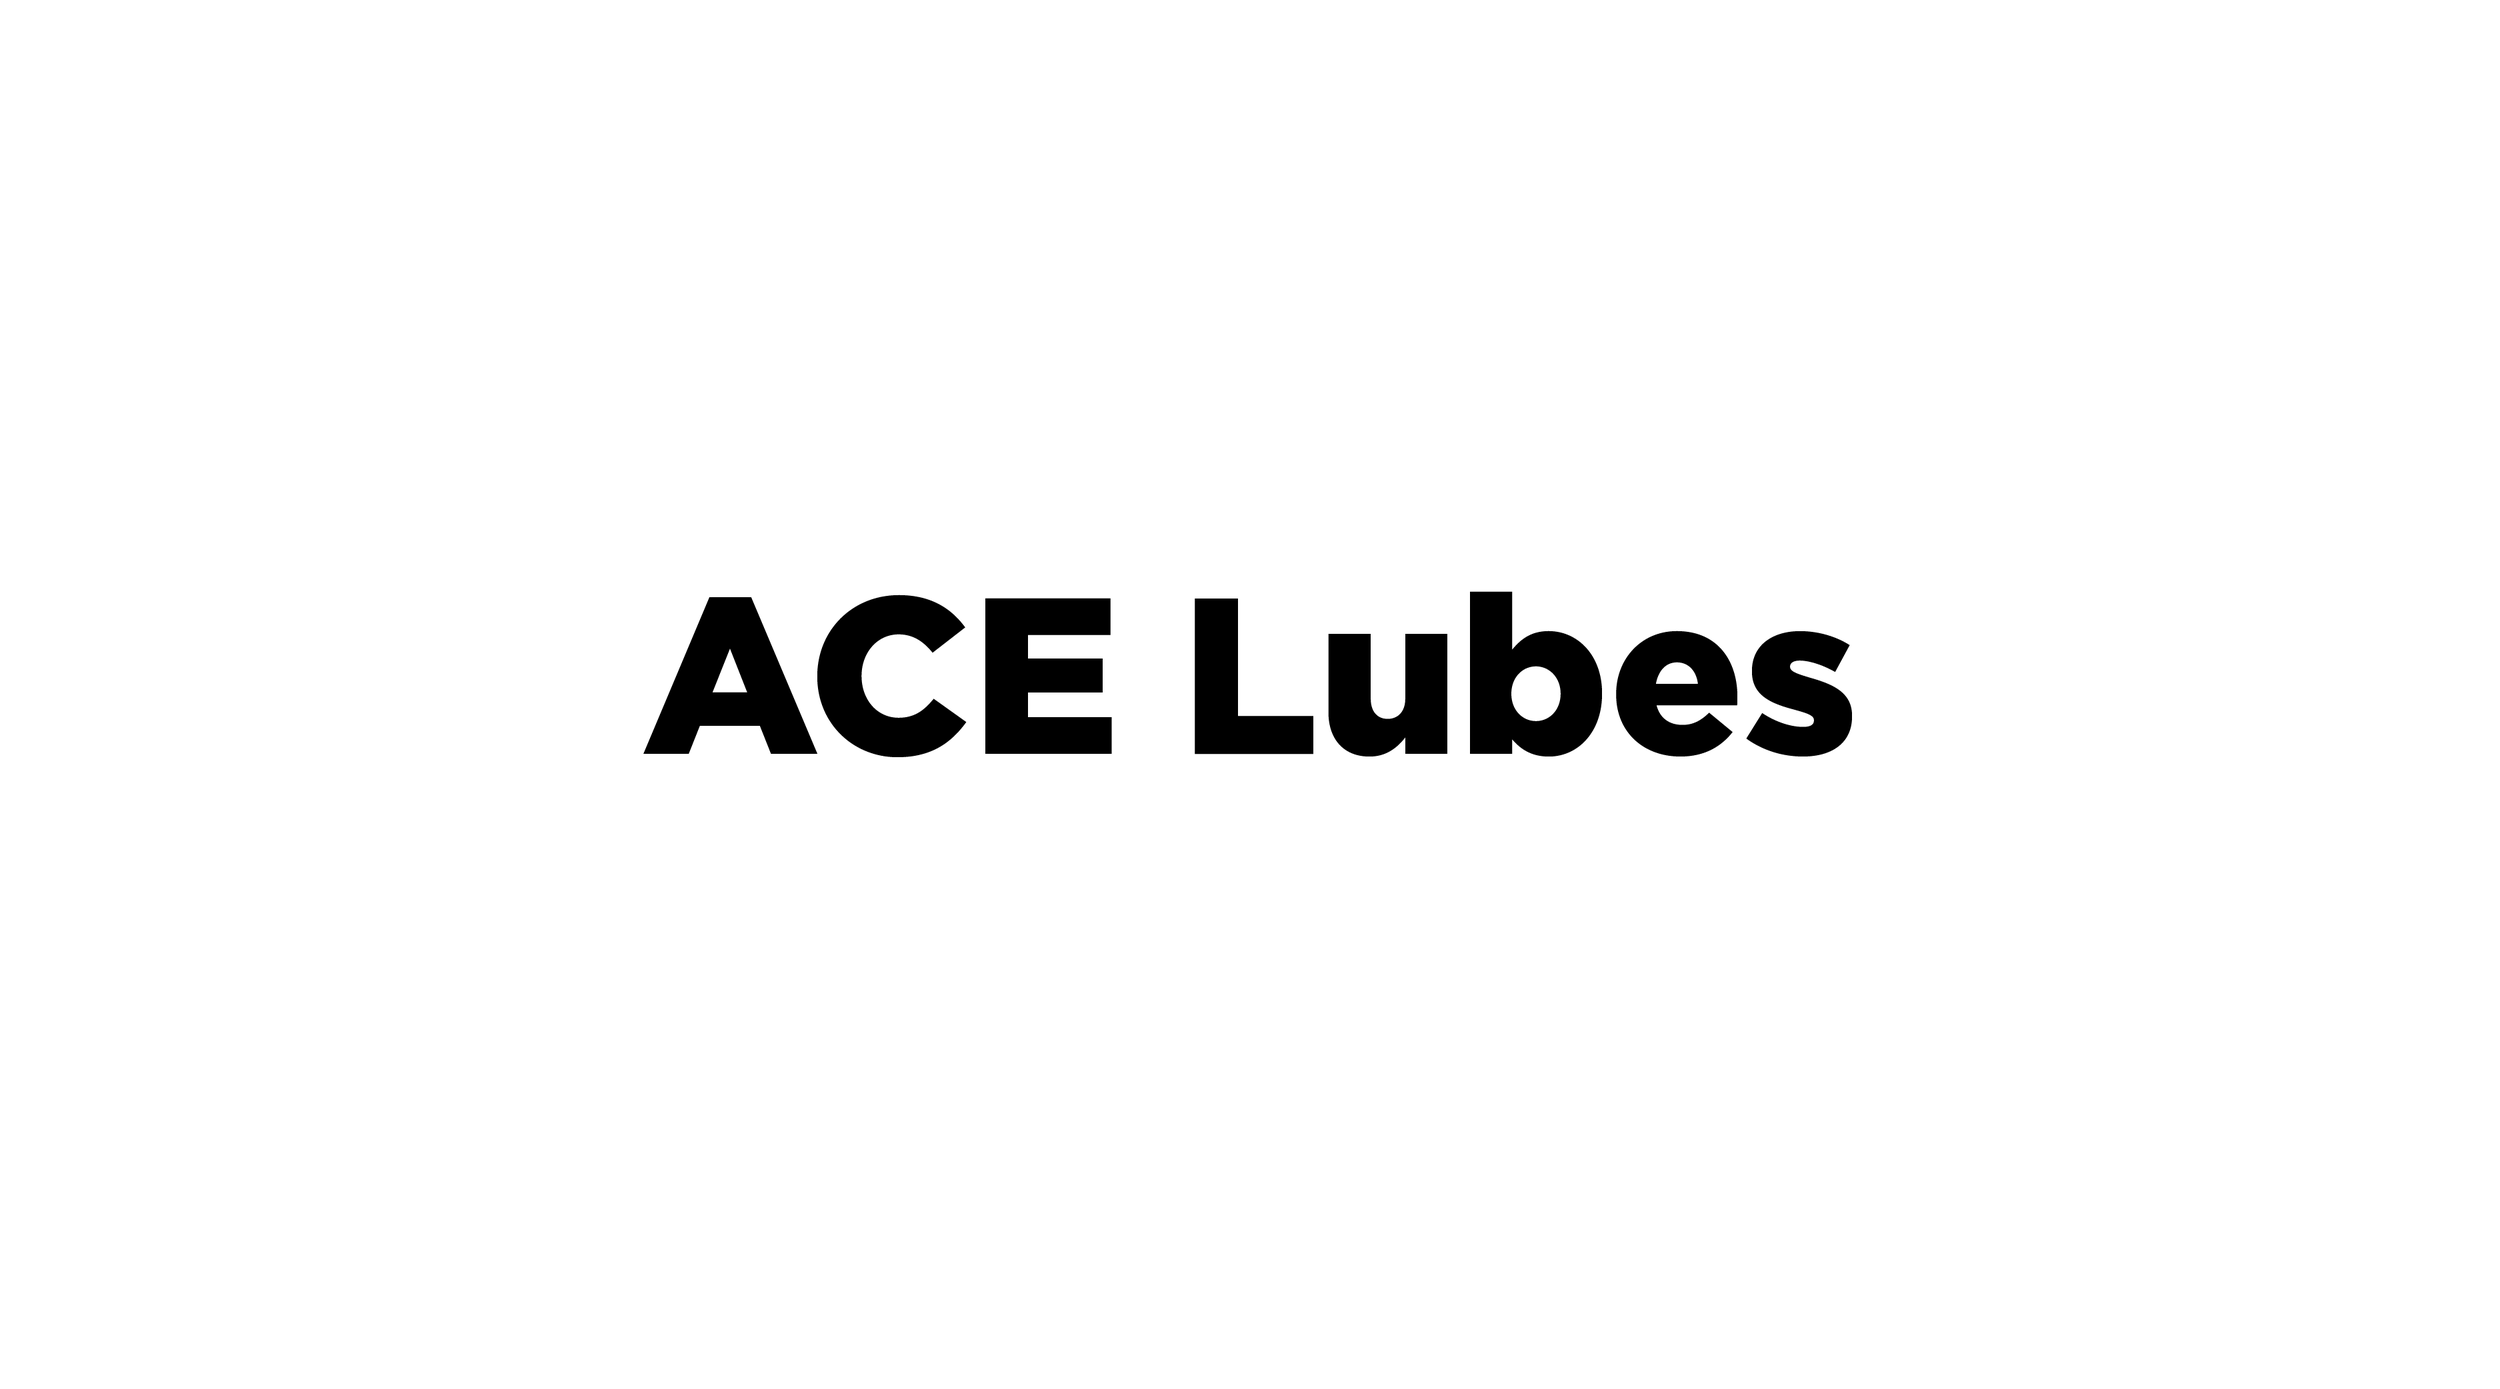 asset-logo-grid_ace-lubes.png